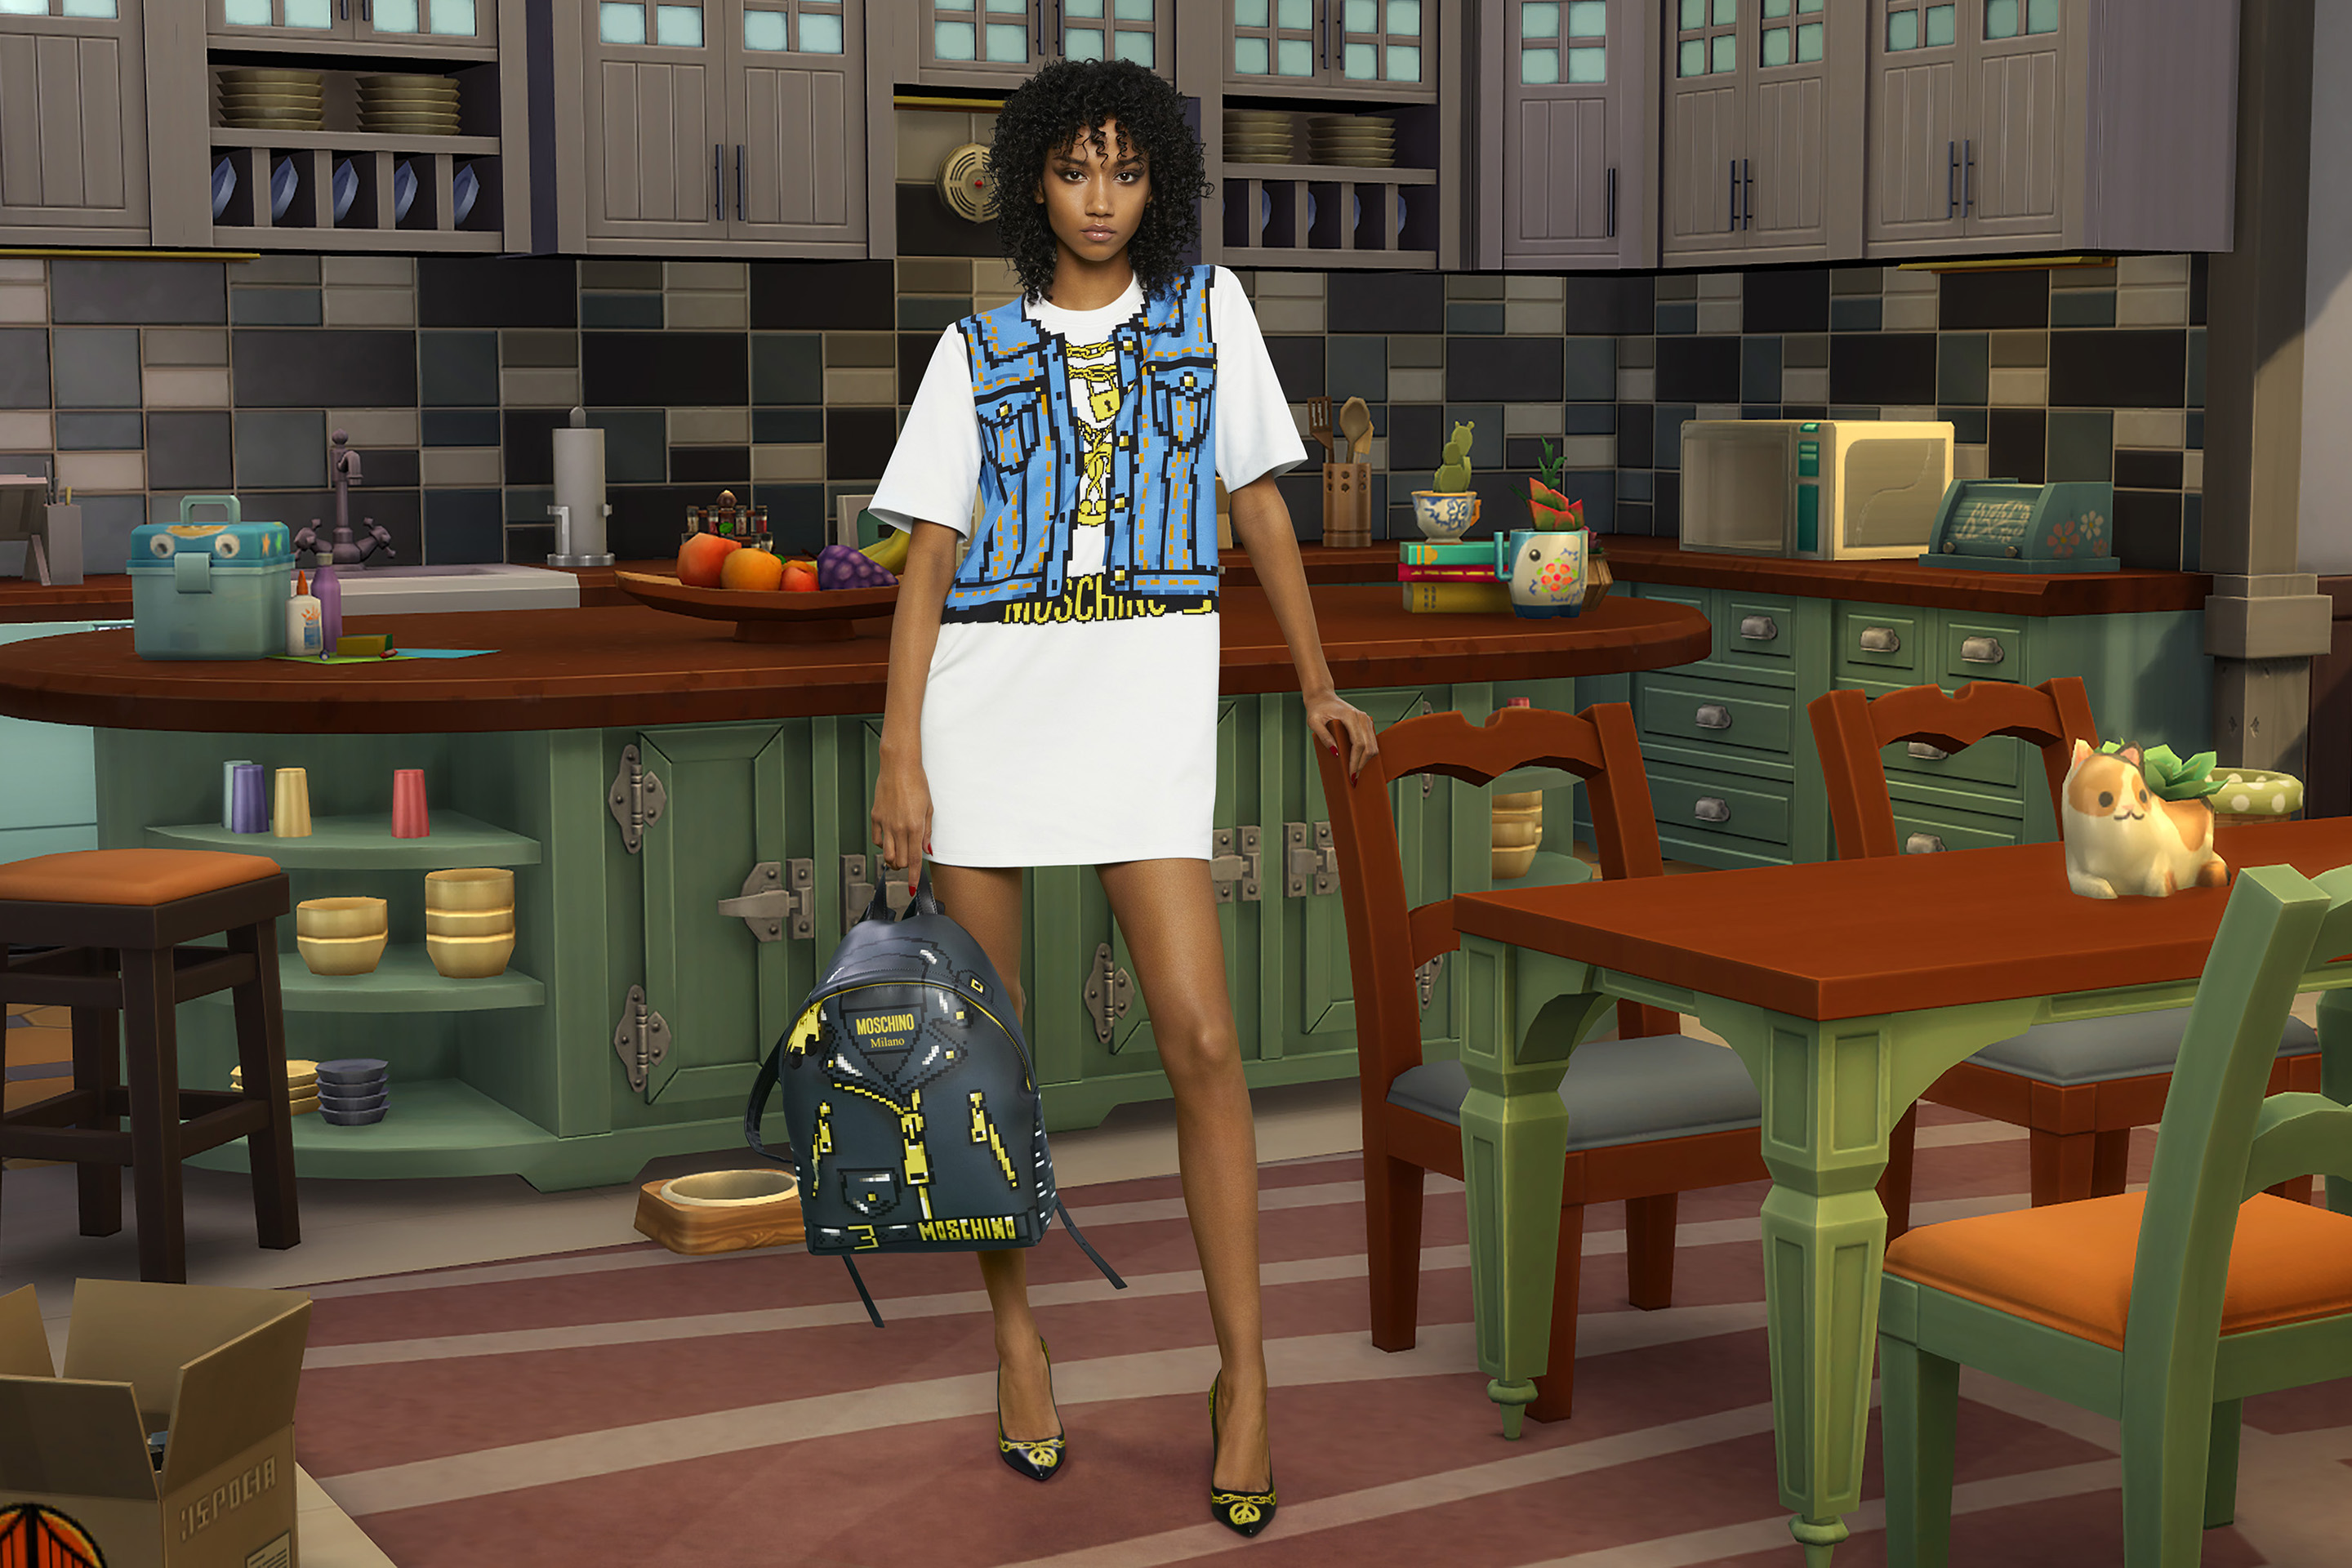 Moschino fashions are now part of the The Sims' storyline.